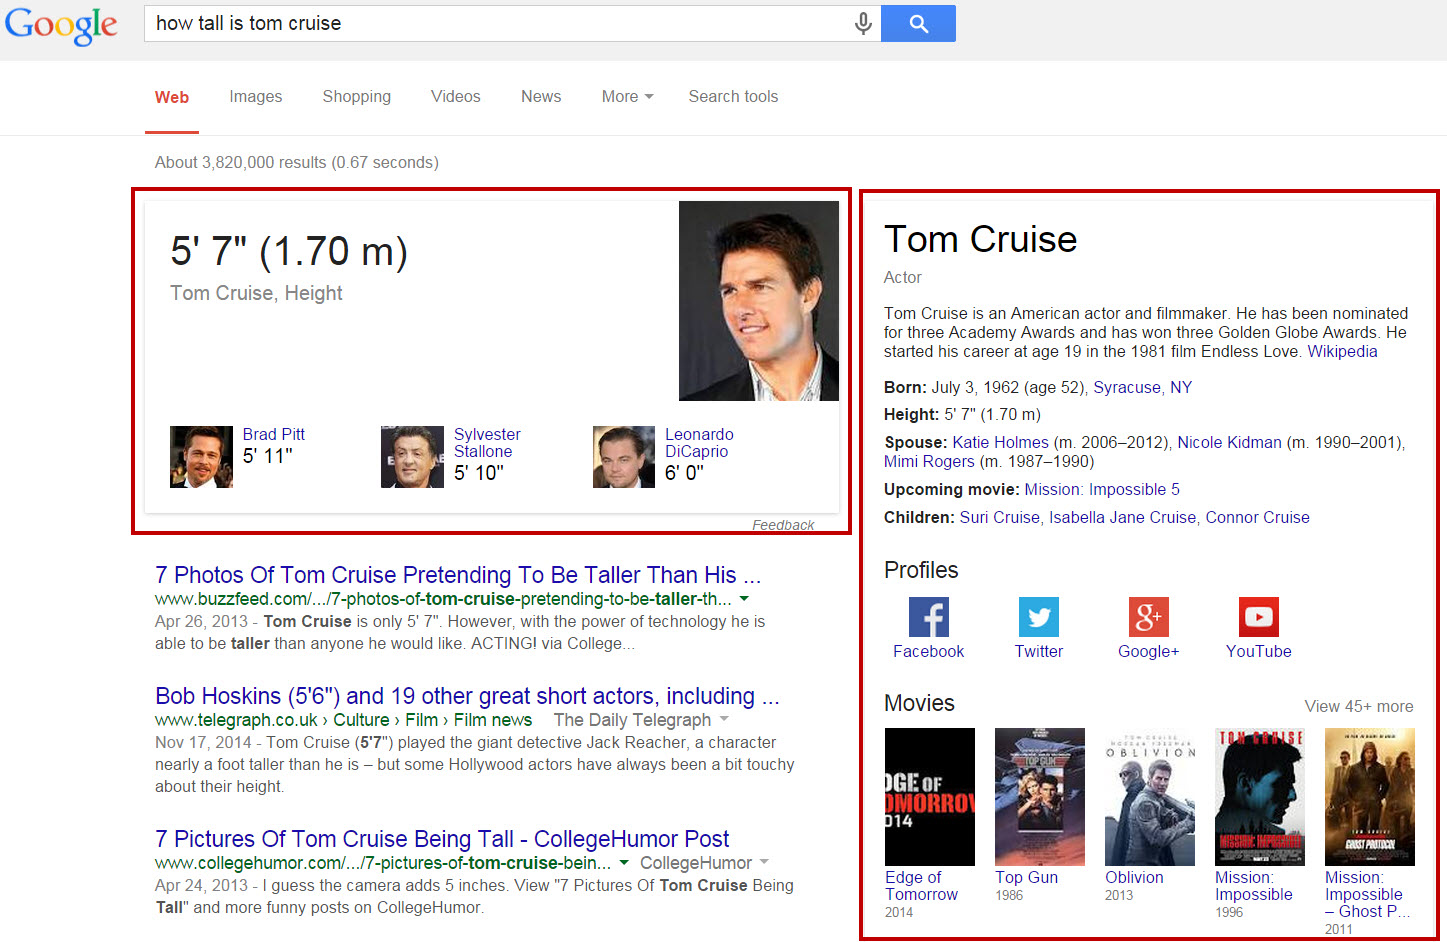 tom-cuise-knowledge-graph-result